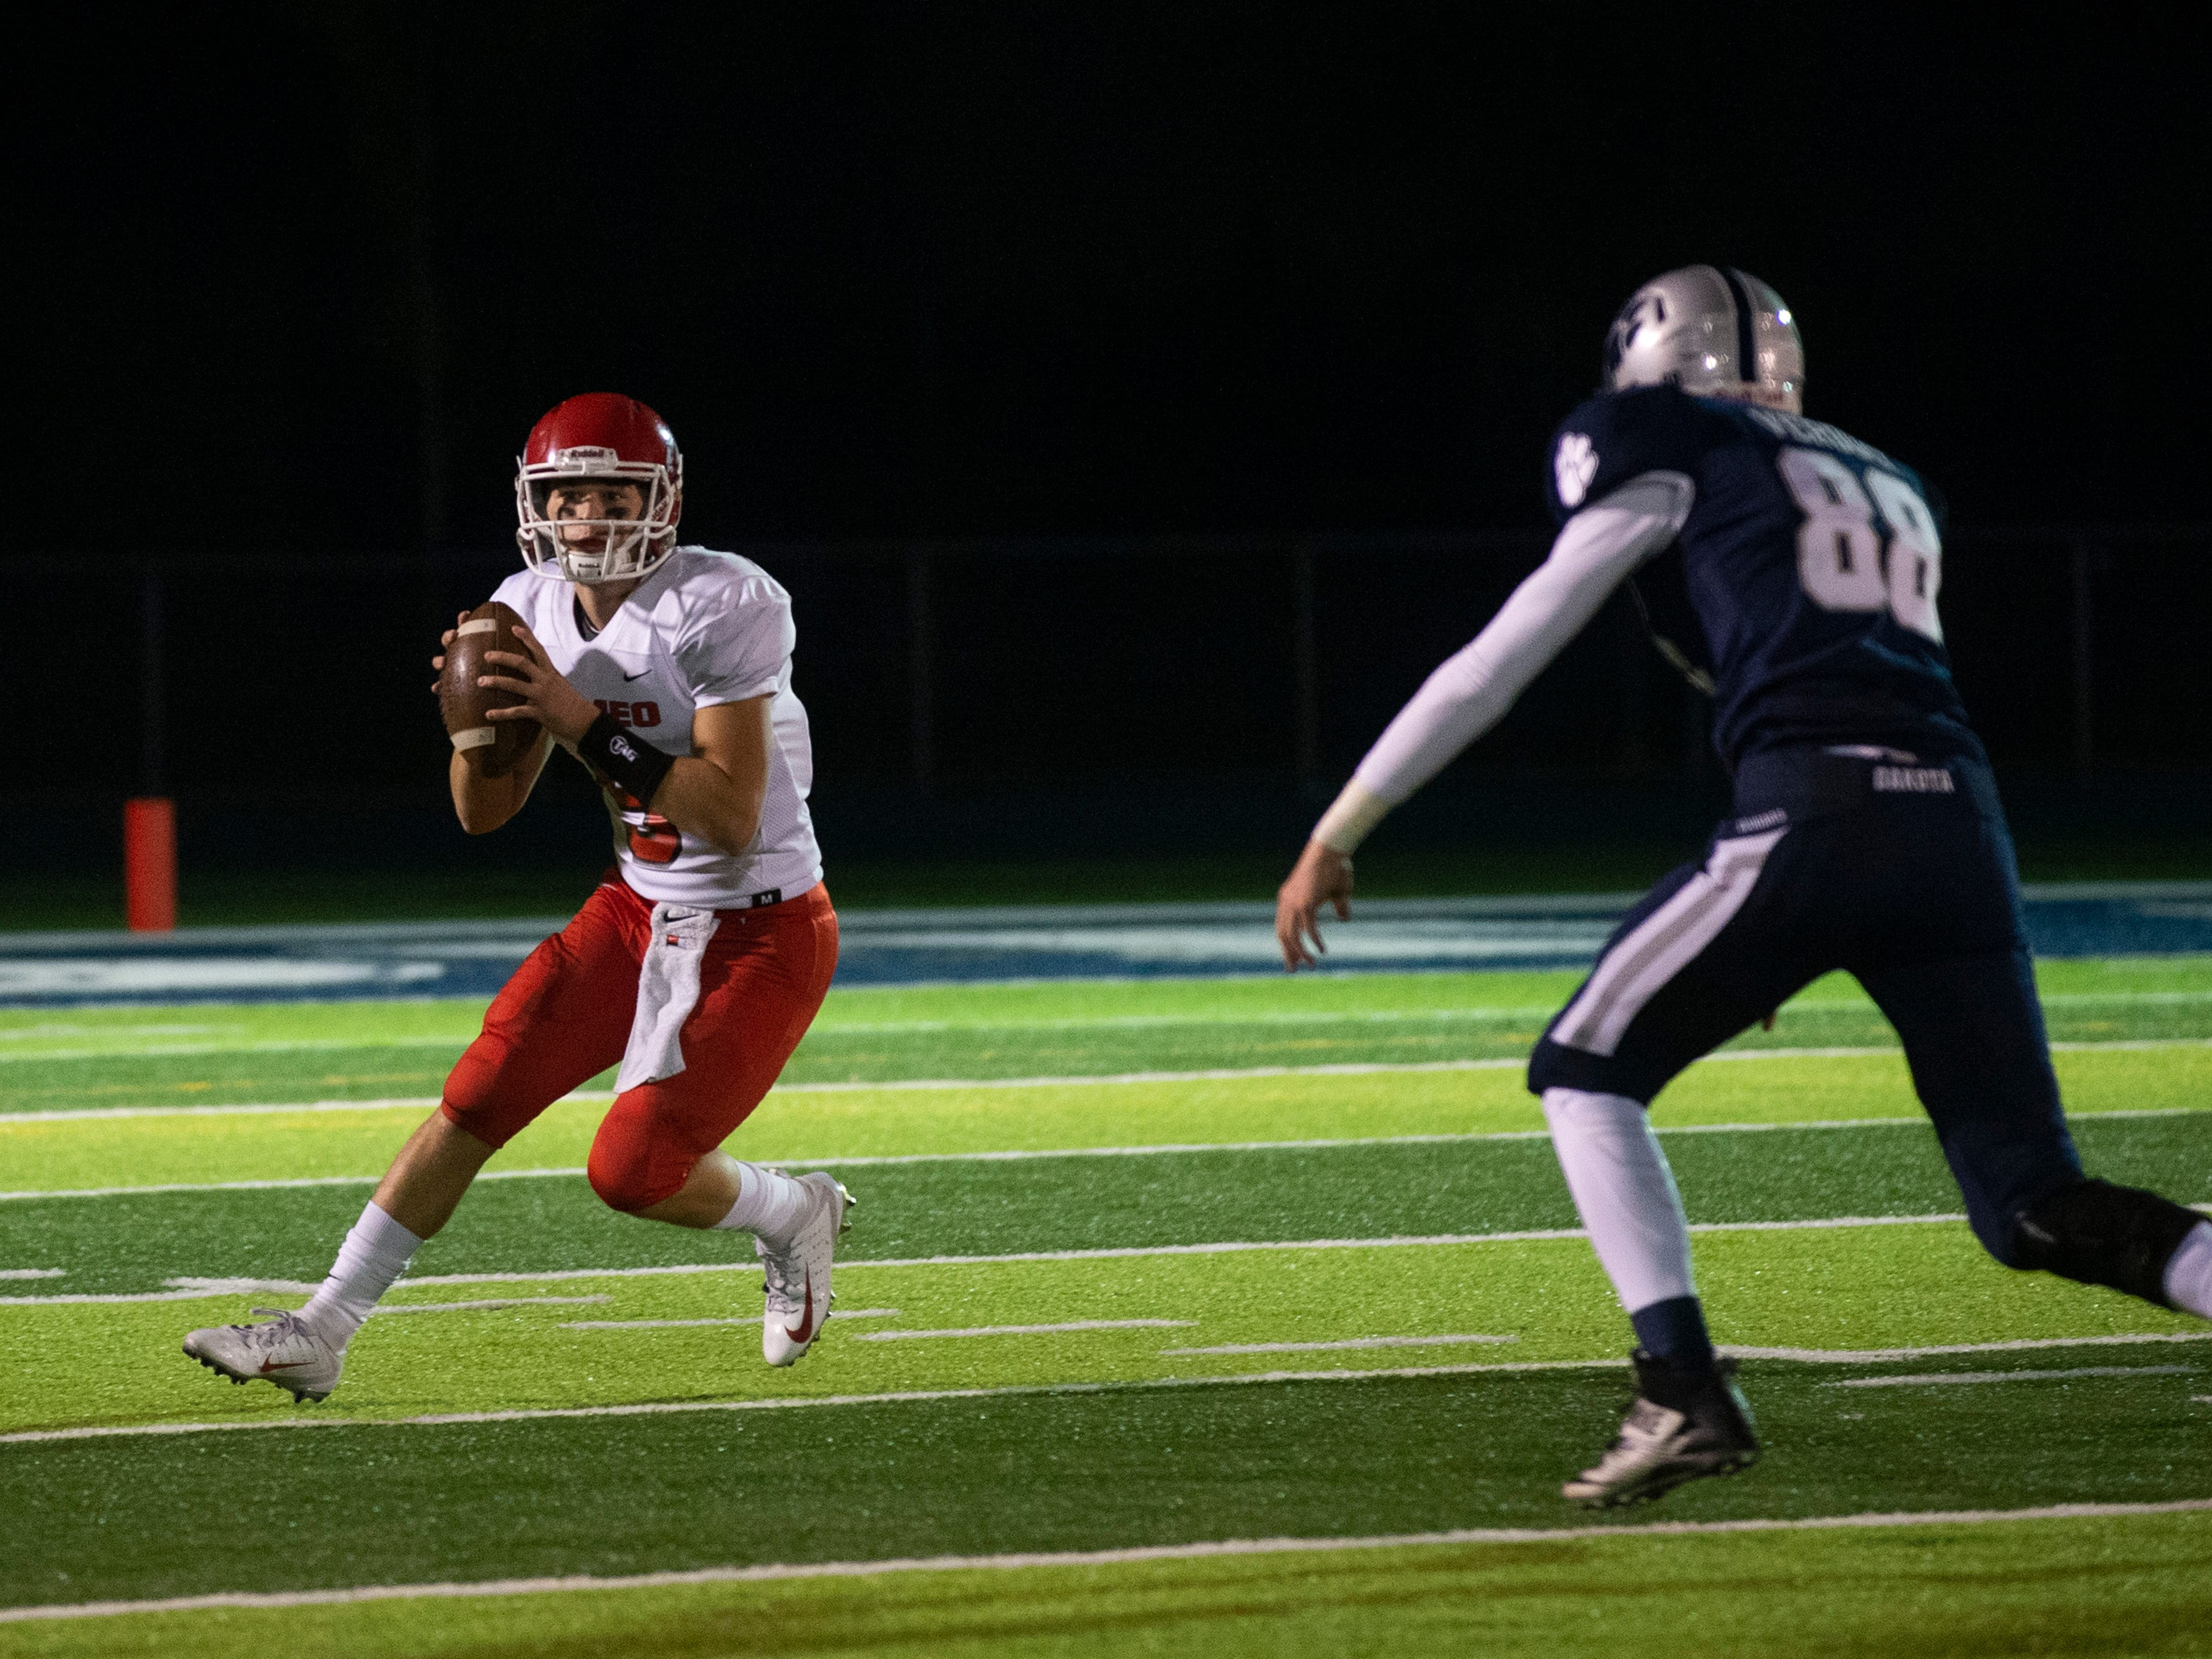 Romeo's Quarterback Jack Wendt looks to throw the ball during the 2nd quarter.